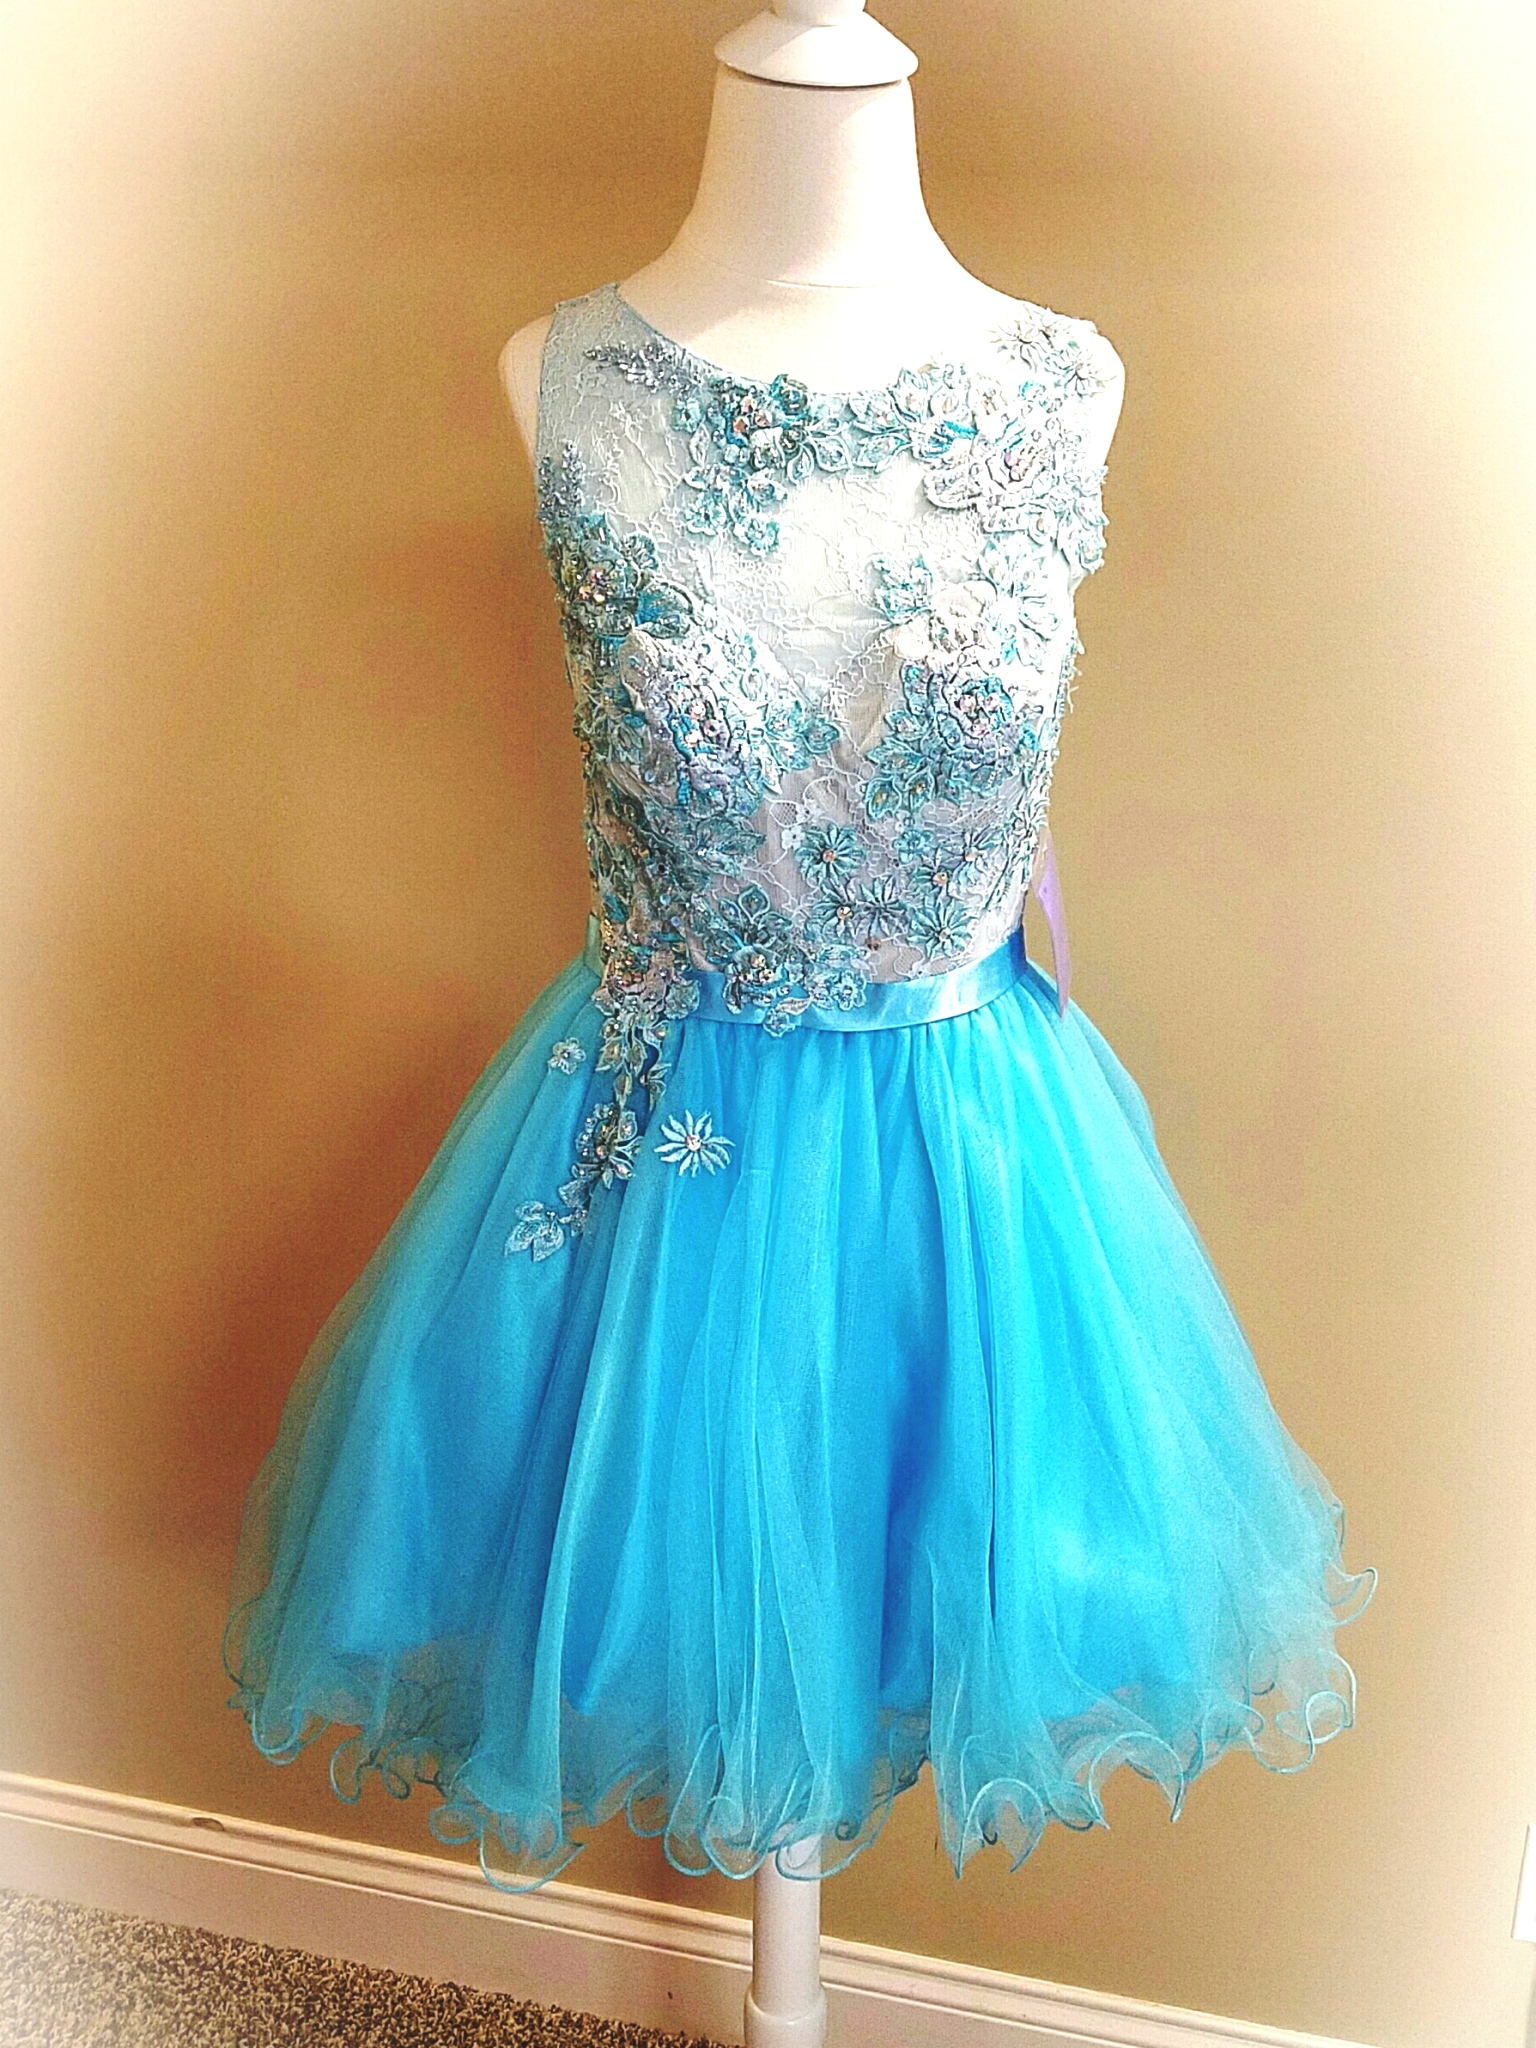 02-0194   Size 2